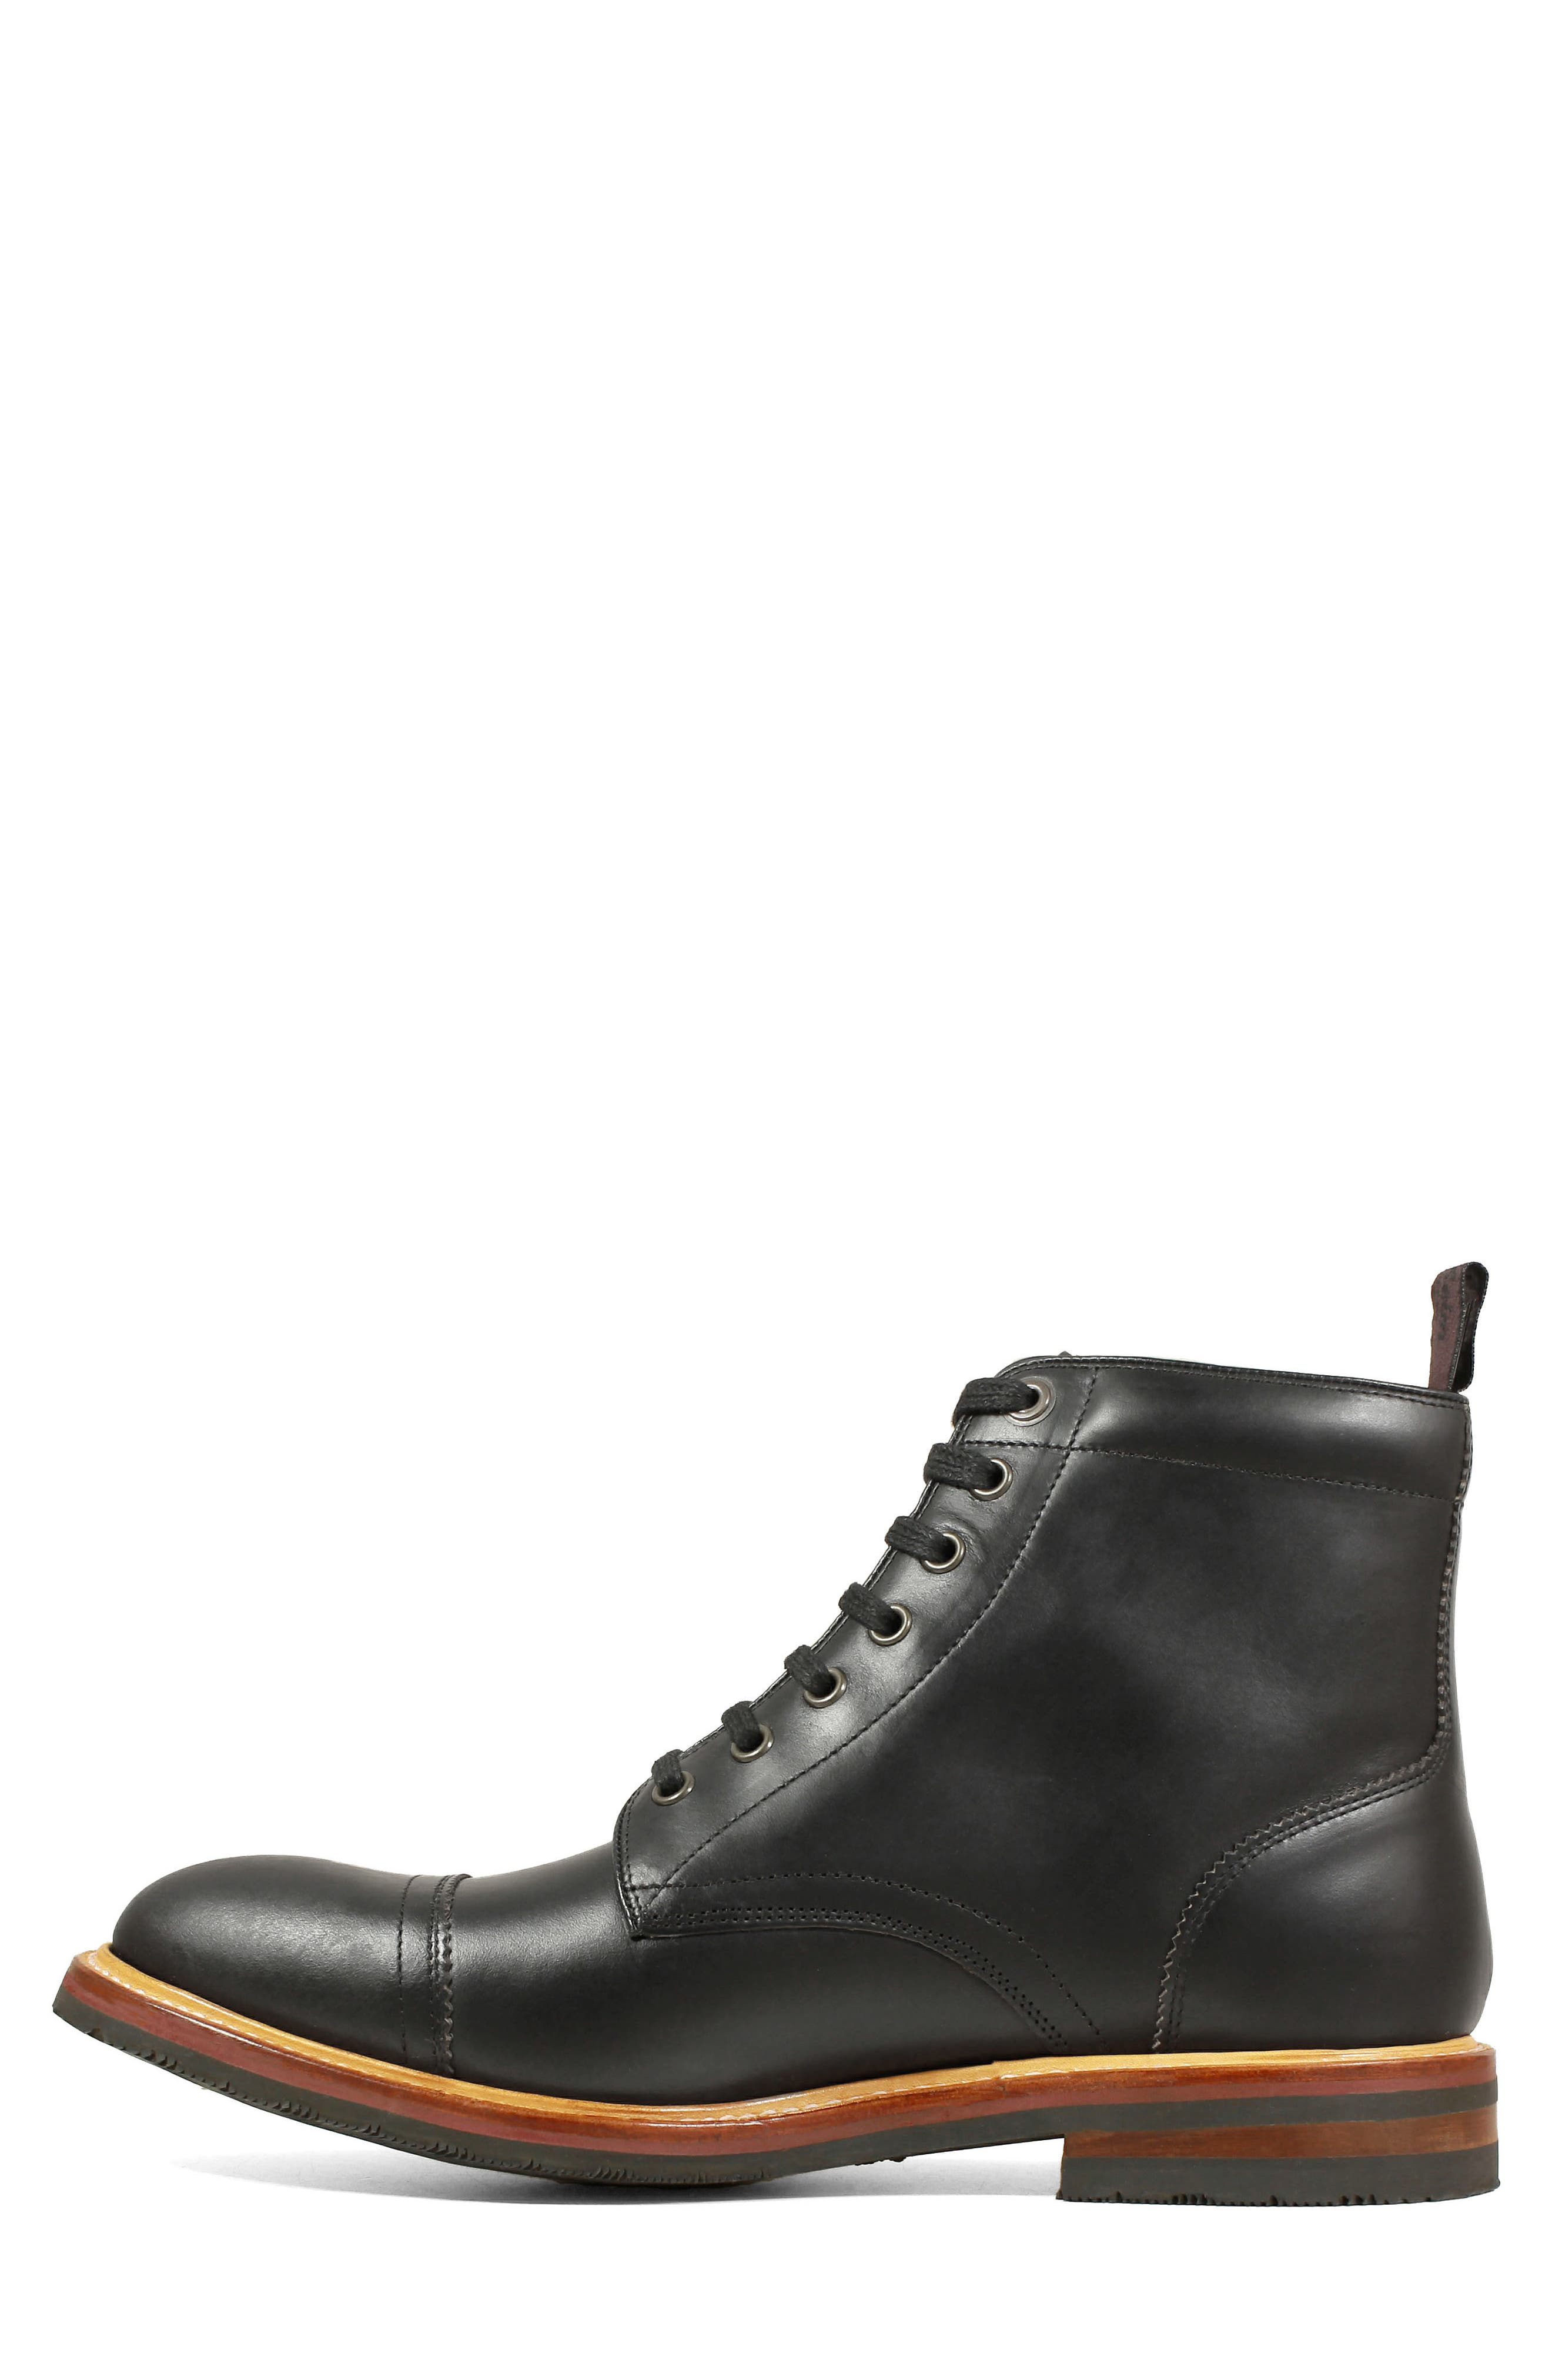 Founcry Cap Toe Boot,                             Alternate thumbnail 7, color,                             BLACK LEATHER